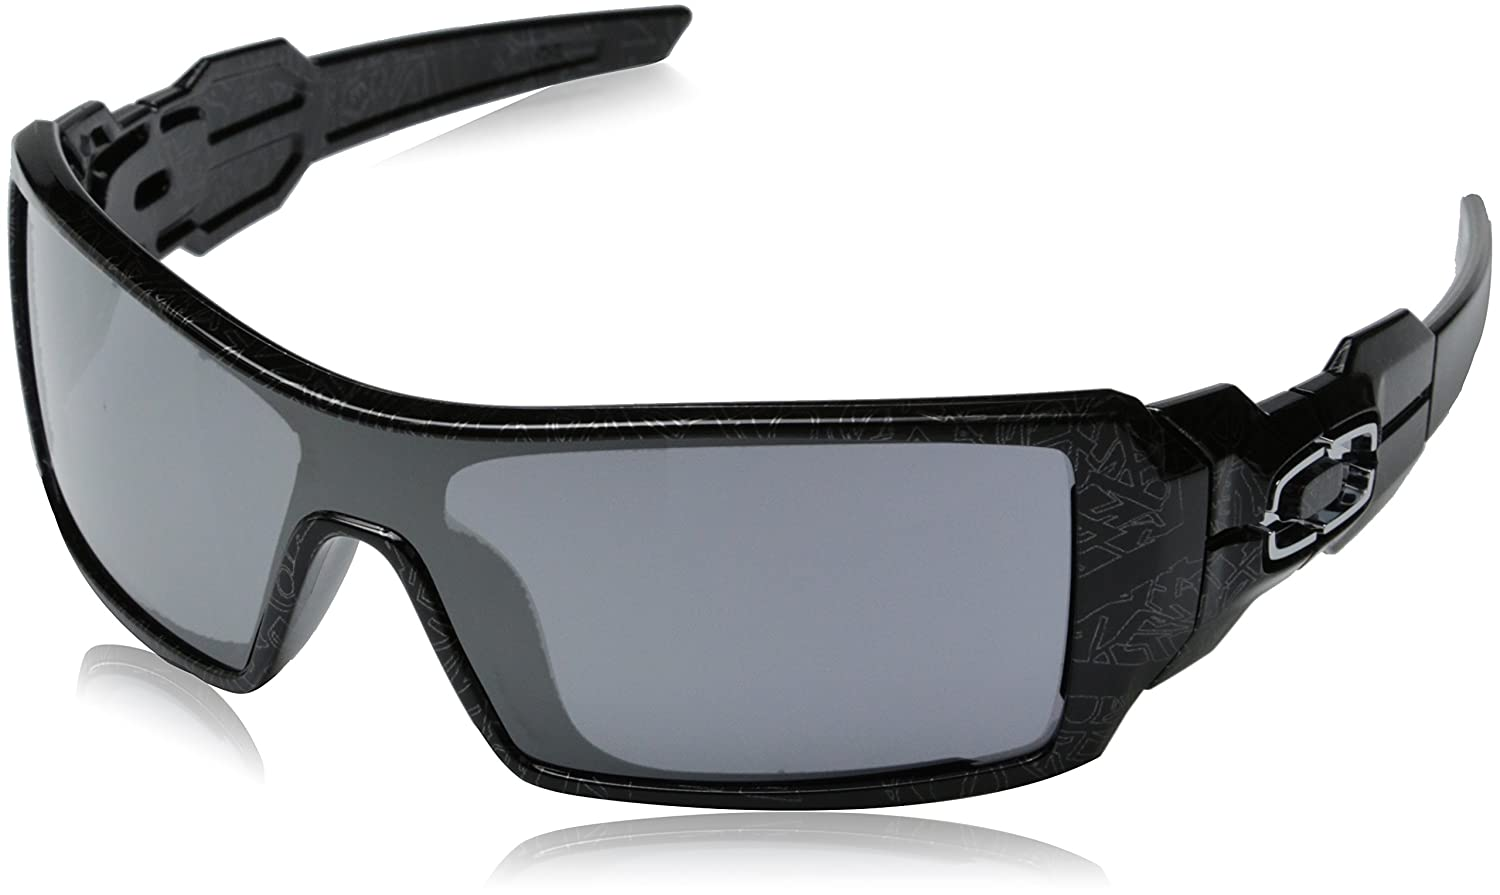 94cefa3570 Amazon.com  Oakley Oil Rig Men s Lifestyle Sports Wear Sunglasses -  Polished Black Silver Ghost Text Black Iridium One Size Fits All  Oakley   Clothing